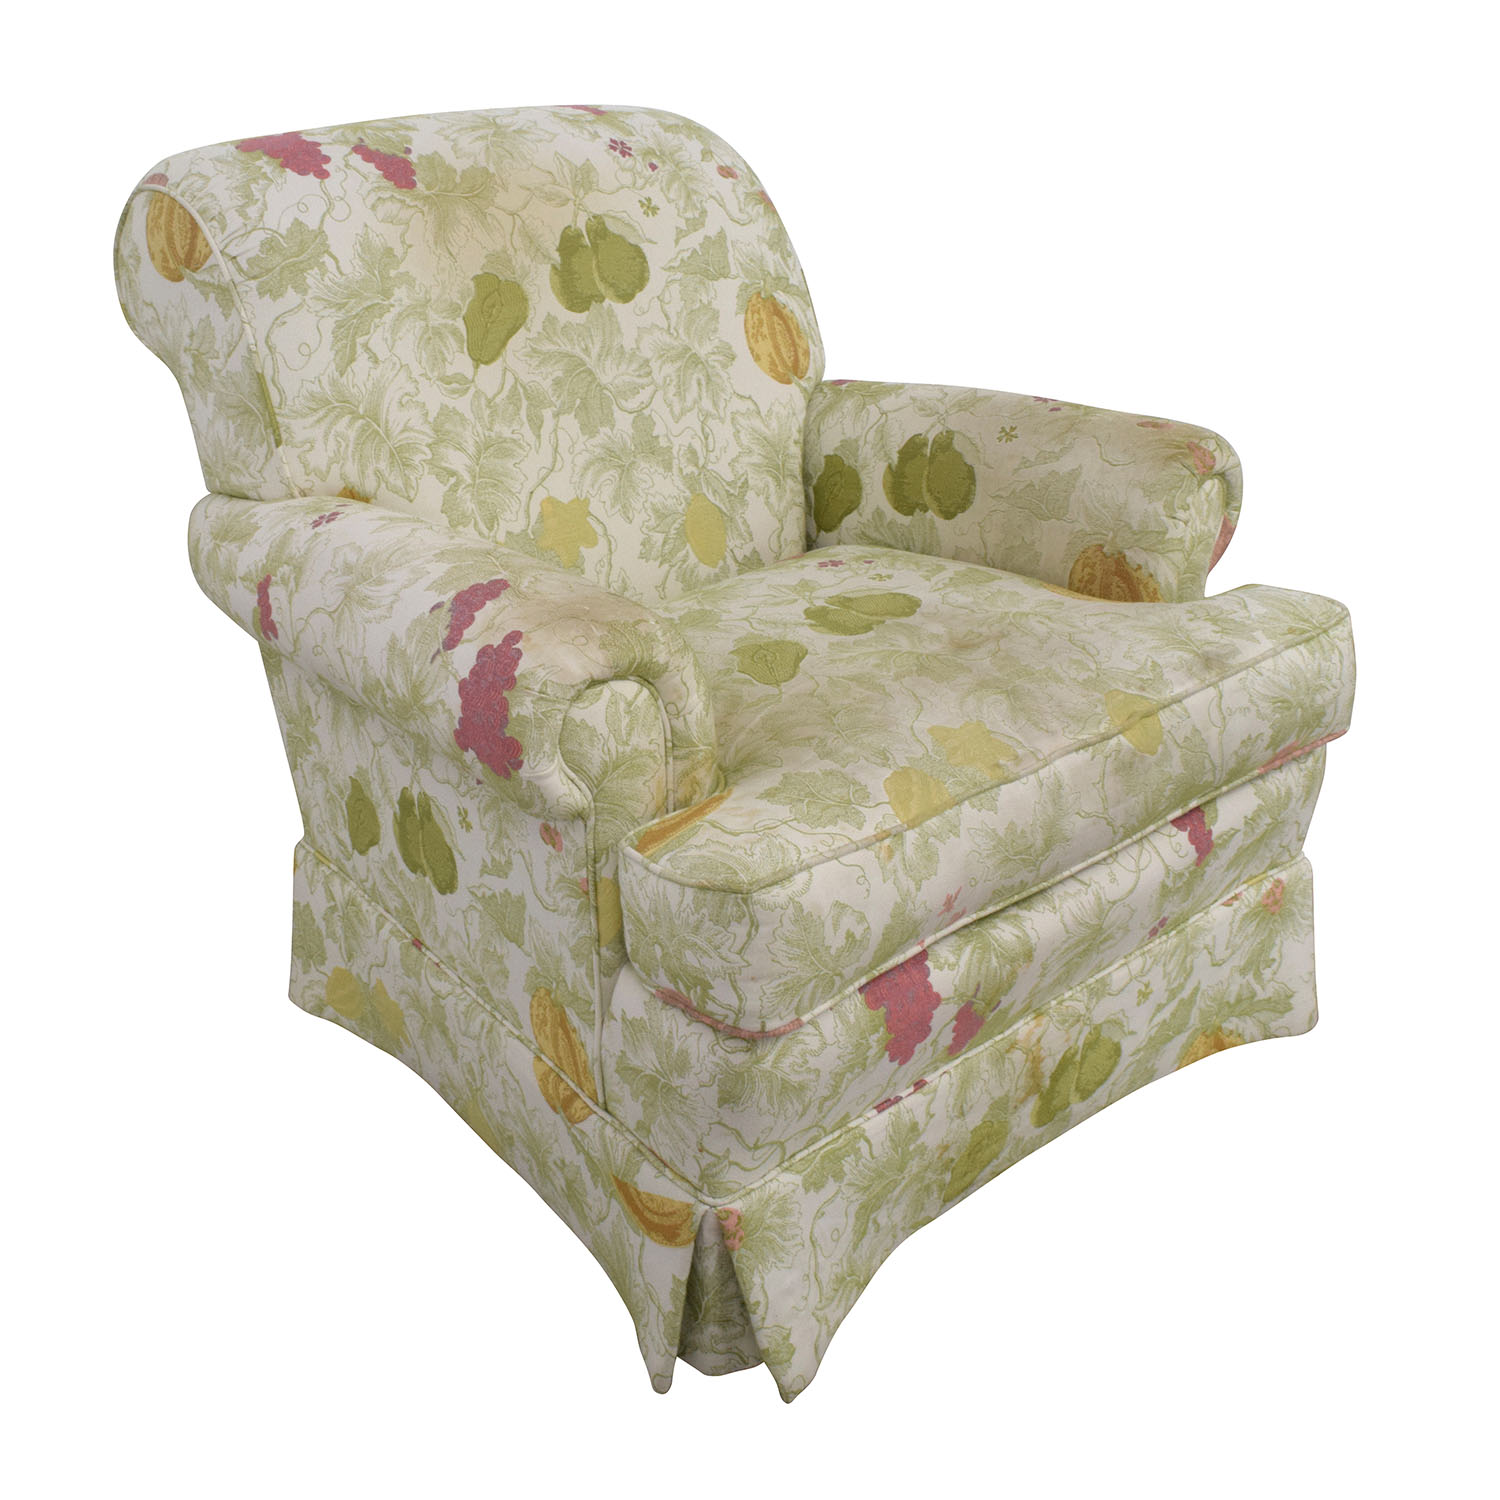 shop Sherrill Sherrill Fruit Patterned Accent Chair online